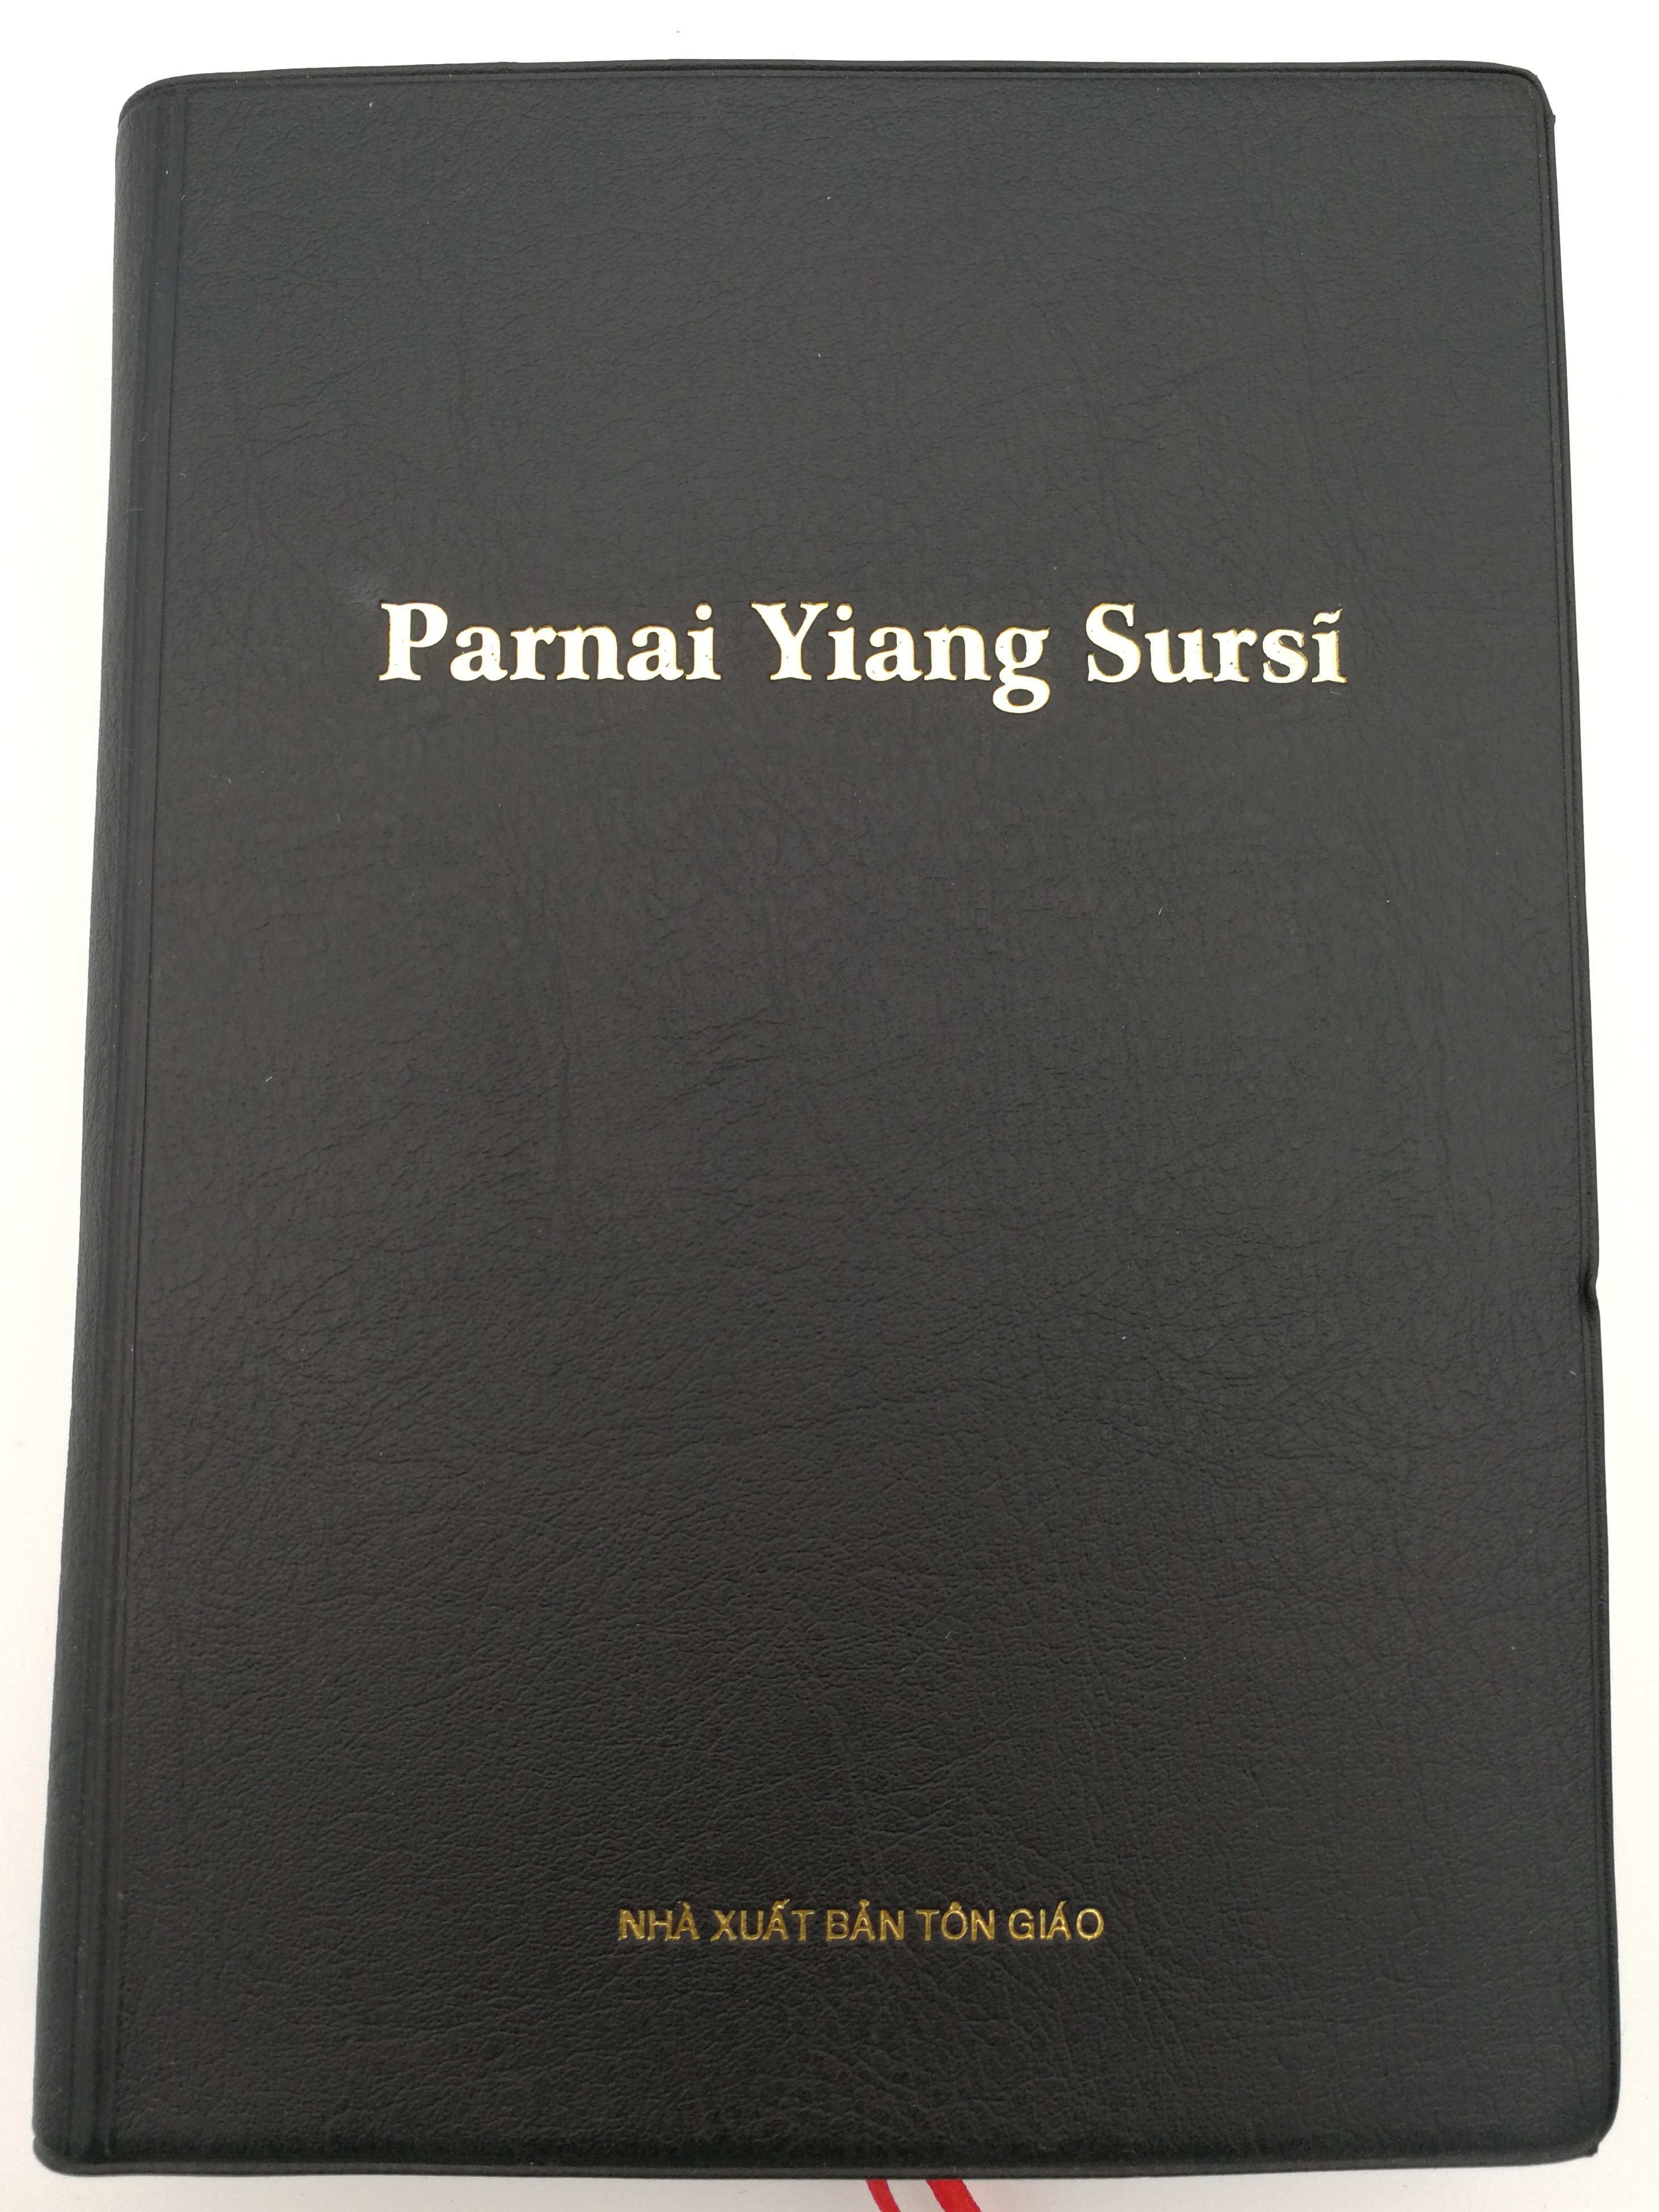 parnai-yian-sursi-bru-language-holy-bible-first-edition-1.jpg